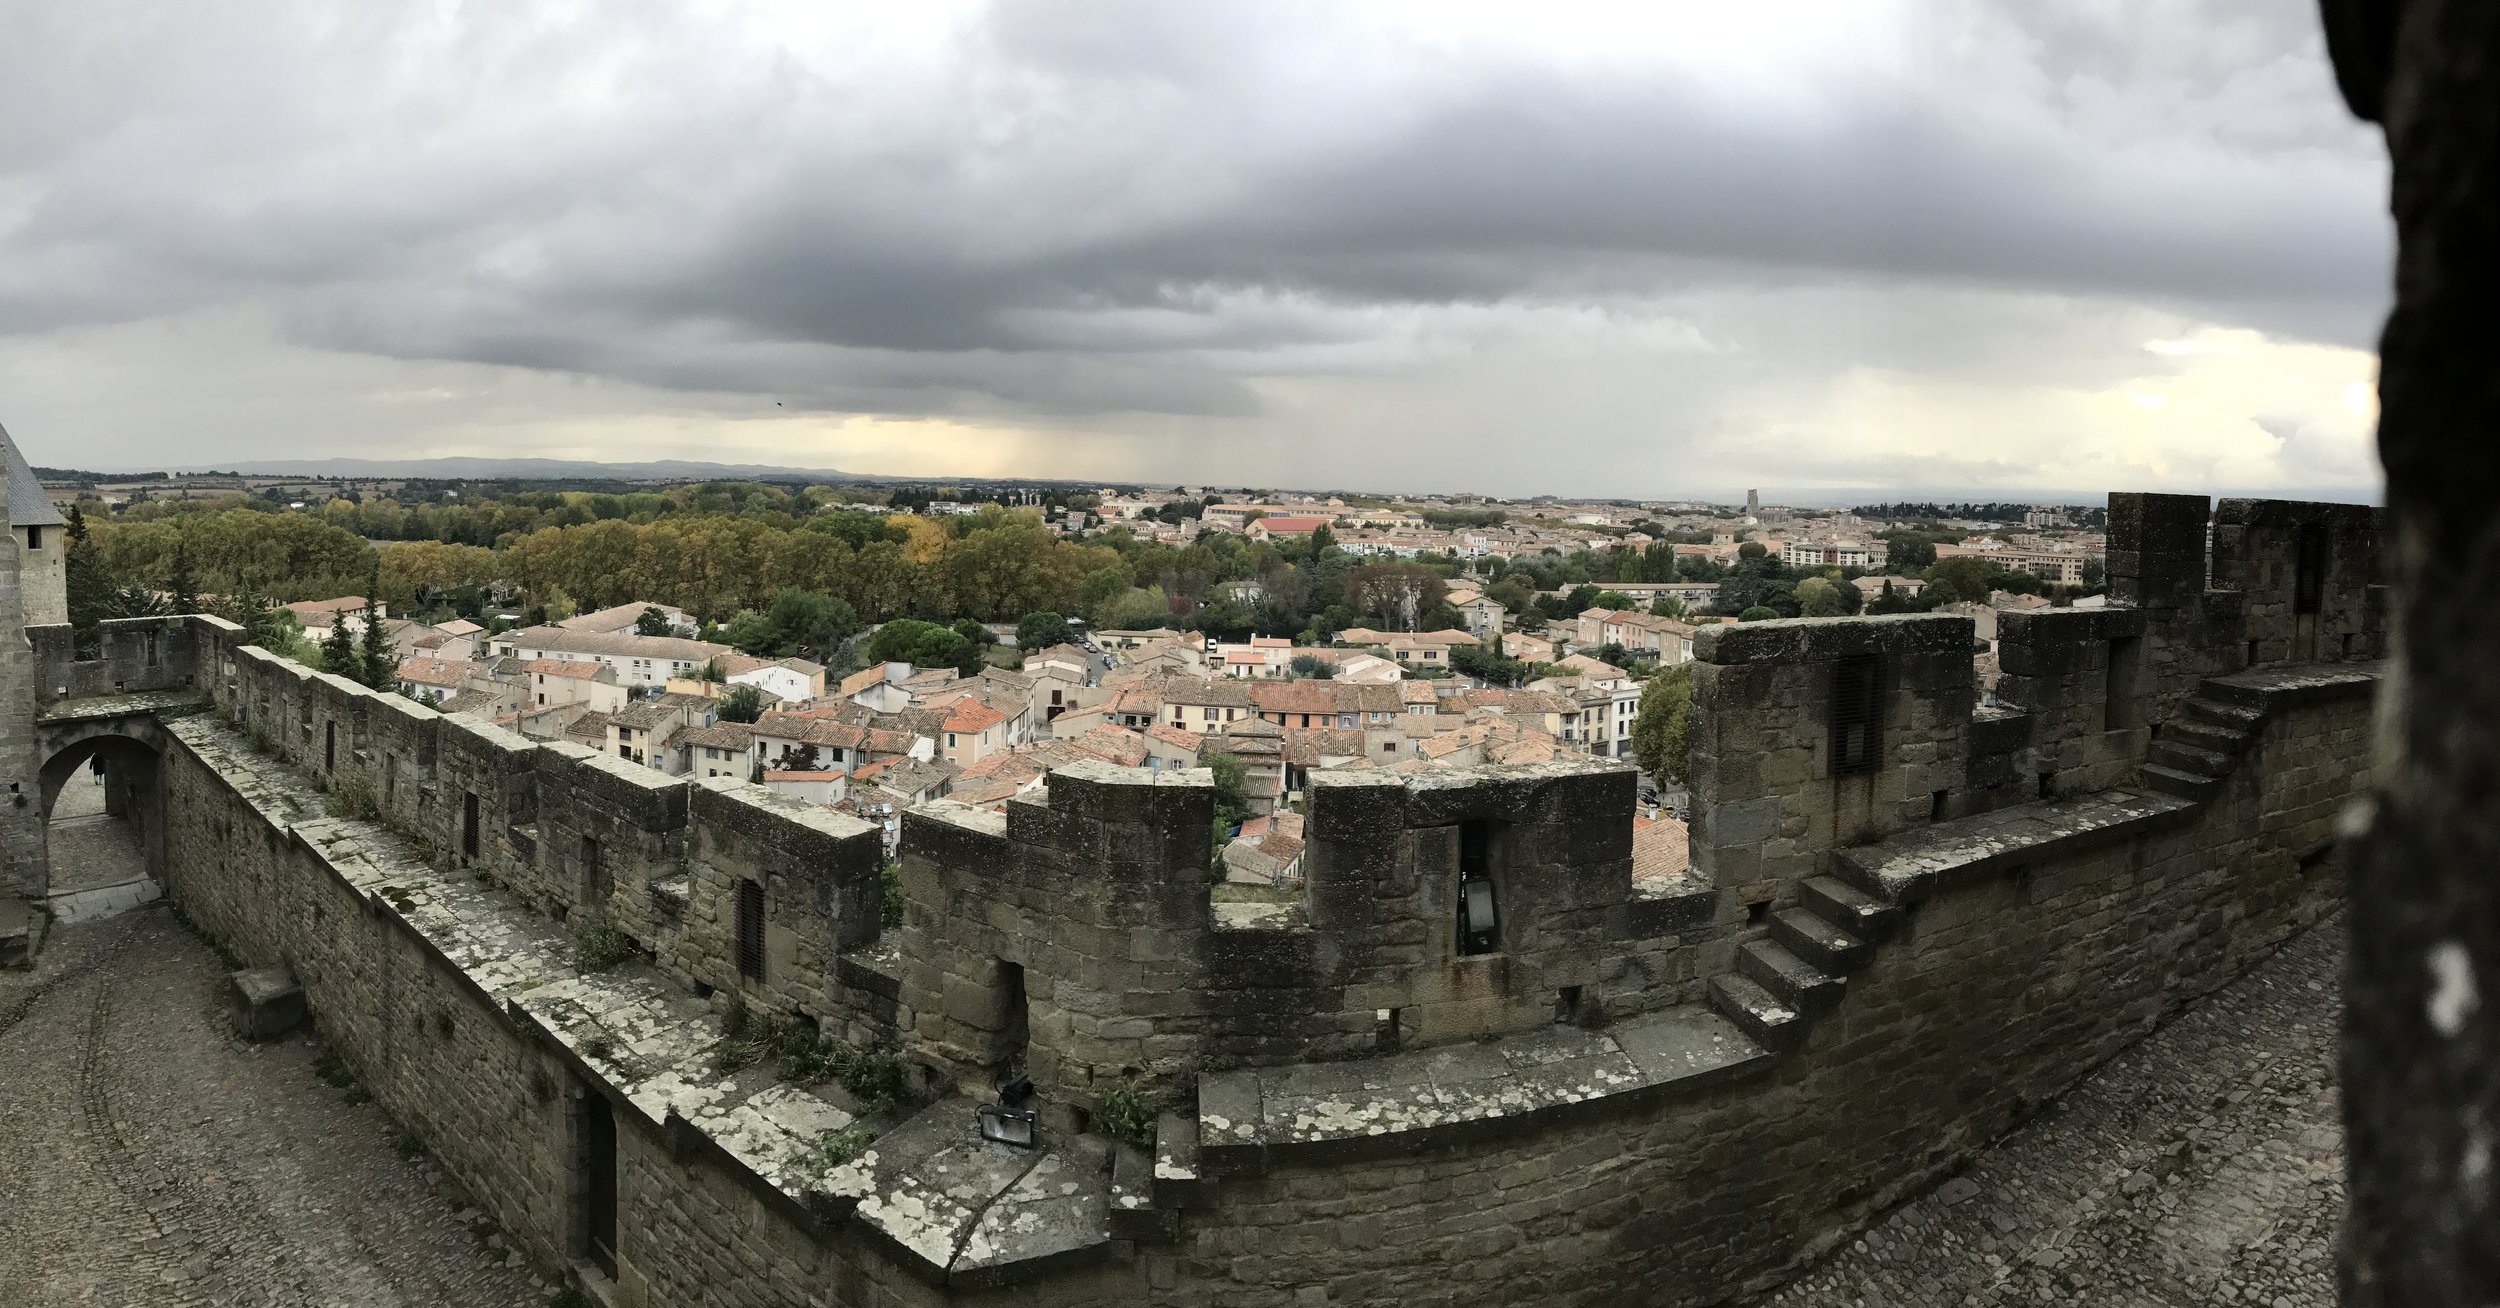 This town in Southern France has an old fort with a ton of history, and unfortunately, bloodshed within its walls. Touring the fort and then spending the night in a CASTLE was COOL!